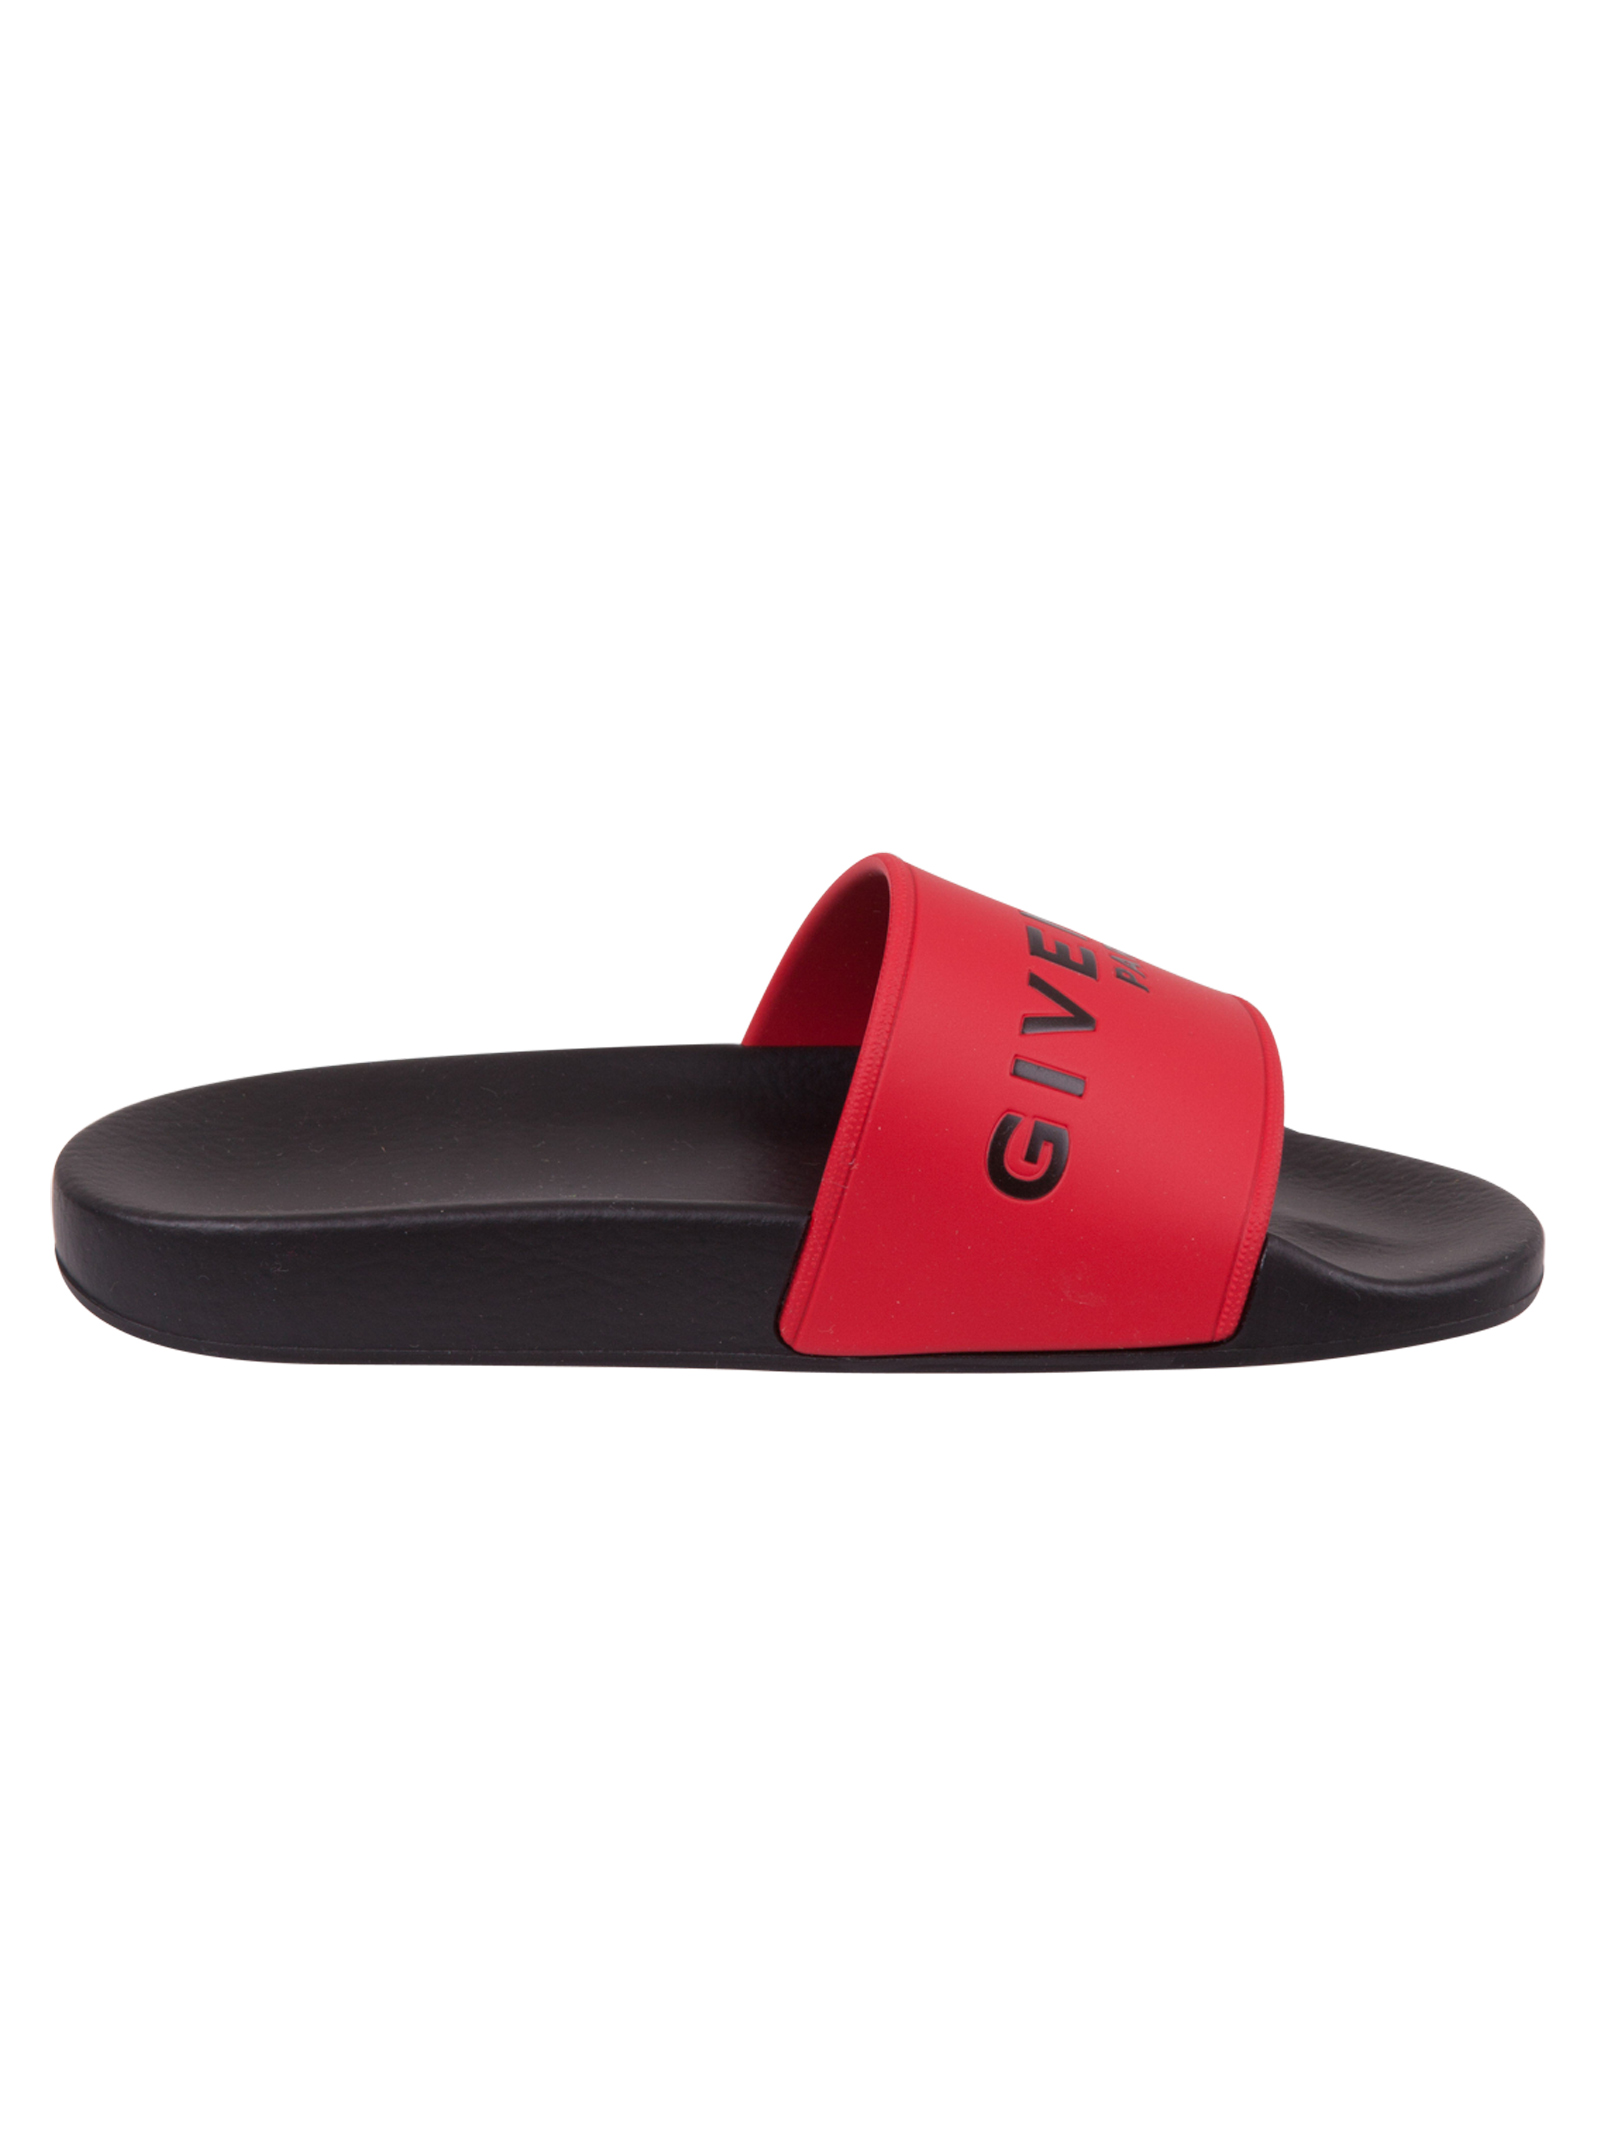 72ede75c797 Givenchy Kids sliders - GIVENCHY kids - Michele Franzese Moda